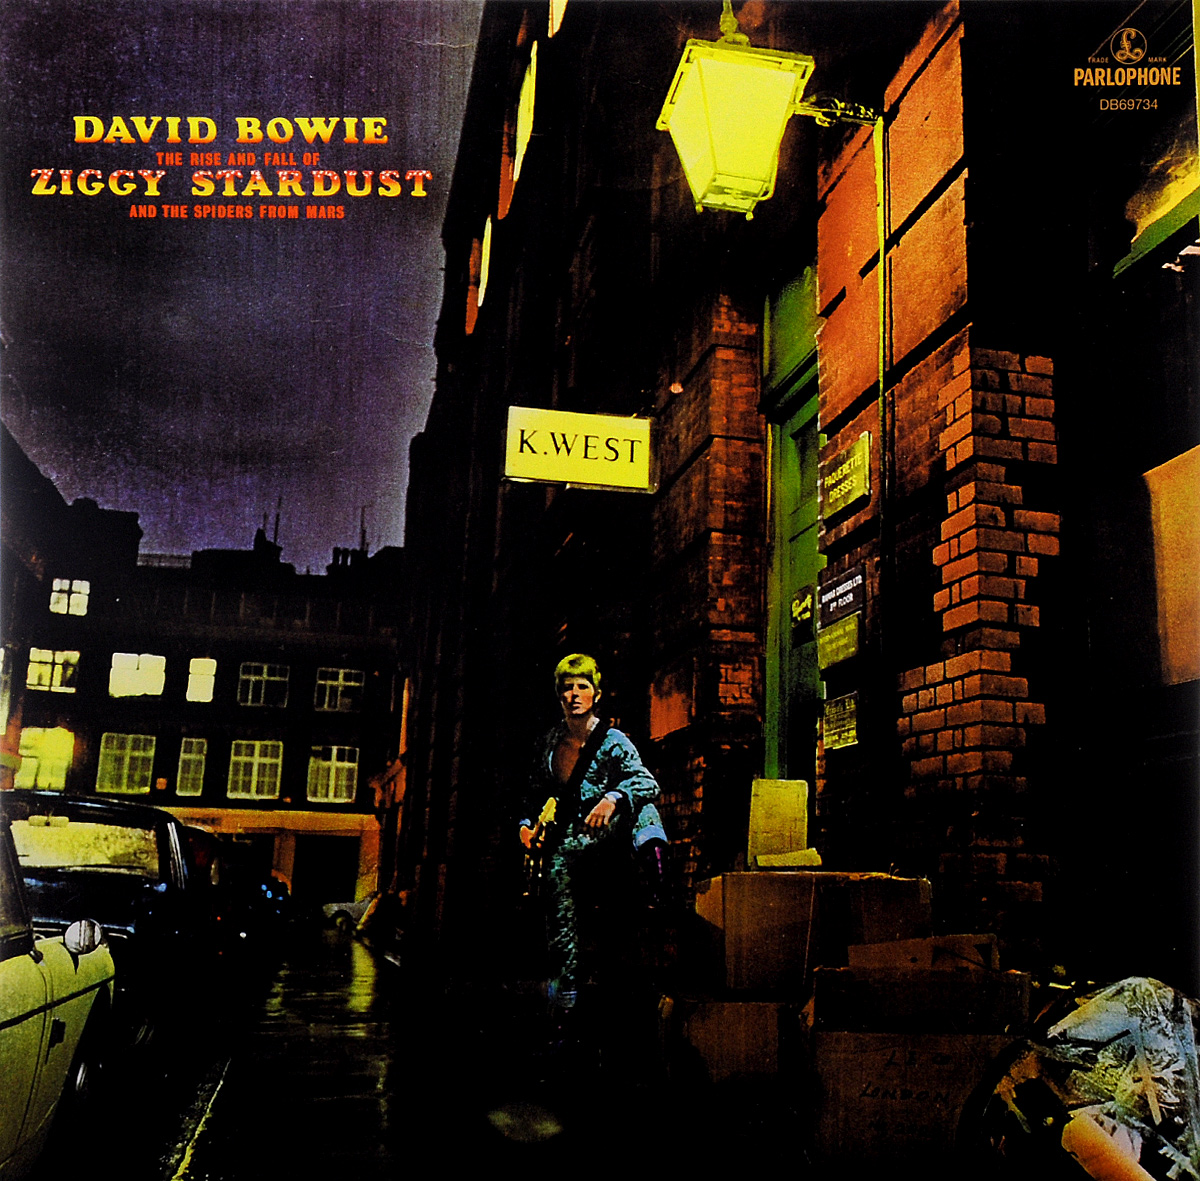 Дэвид Боуи David Bowie. The Rise And Fall Of Ziggy Stardust And The Spiders From Mars (LP) david bowie david bowie the rise and fall of ziggy stardust and the spiders from mars 180 gr